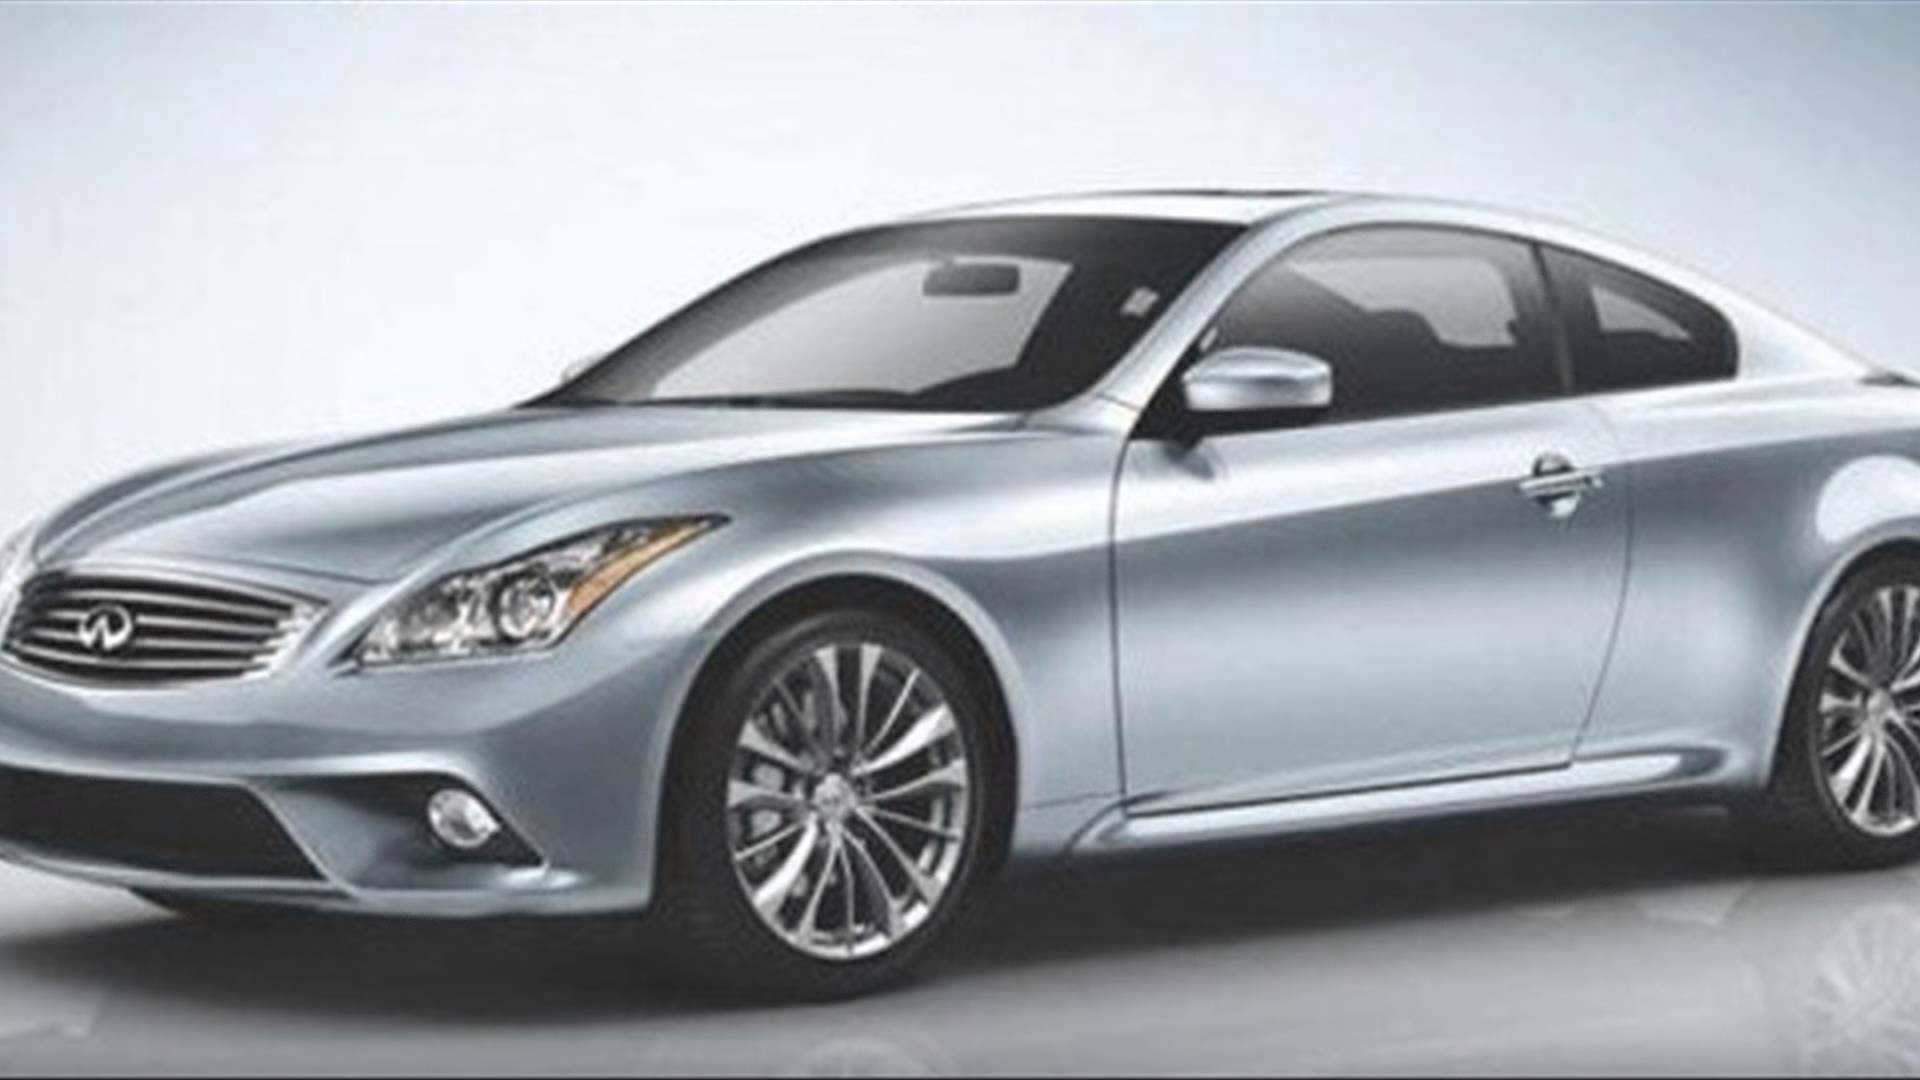 2015 infiniti q60 coupe information and photos zombiedrive 2015 infiniti q60 coupe 10 vanachro Image collections